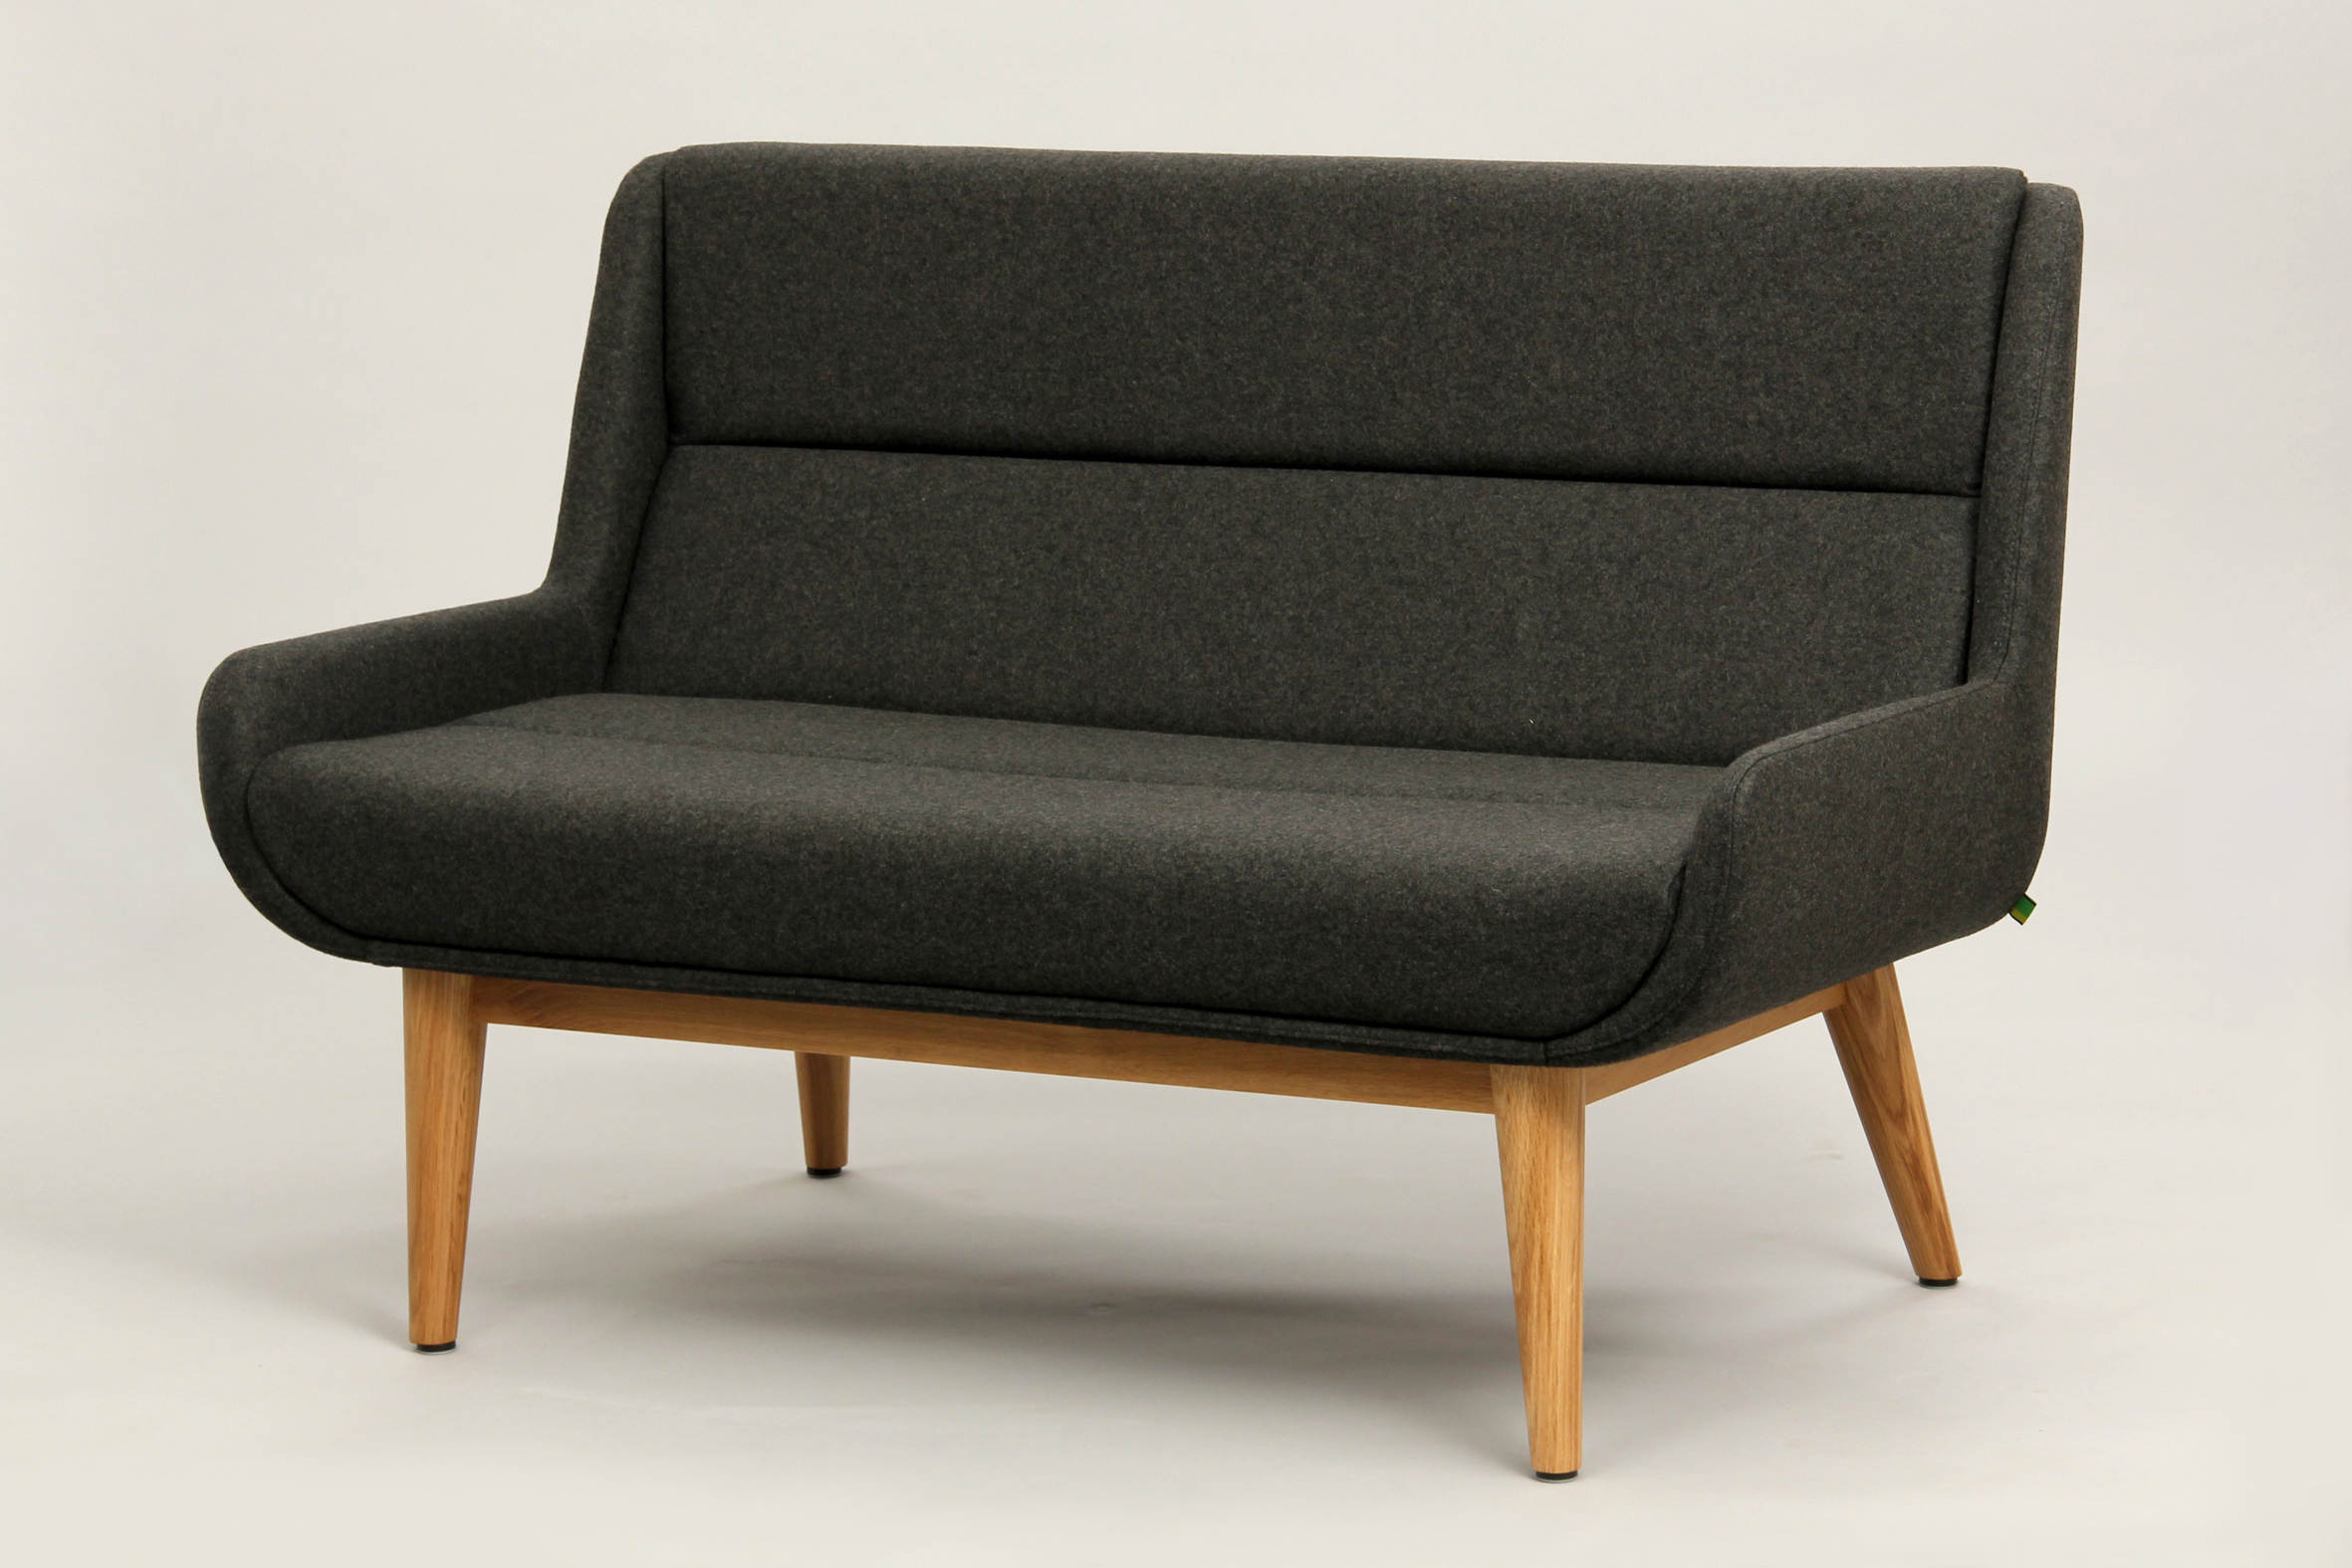 Naughtone Hush Low Sofa